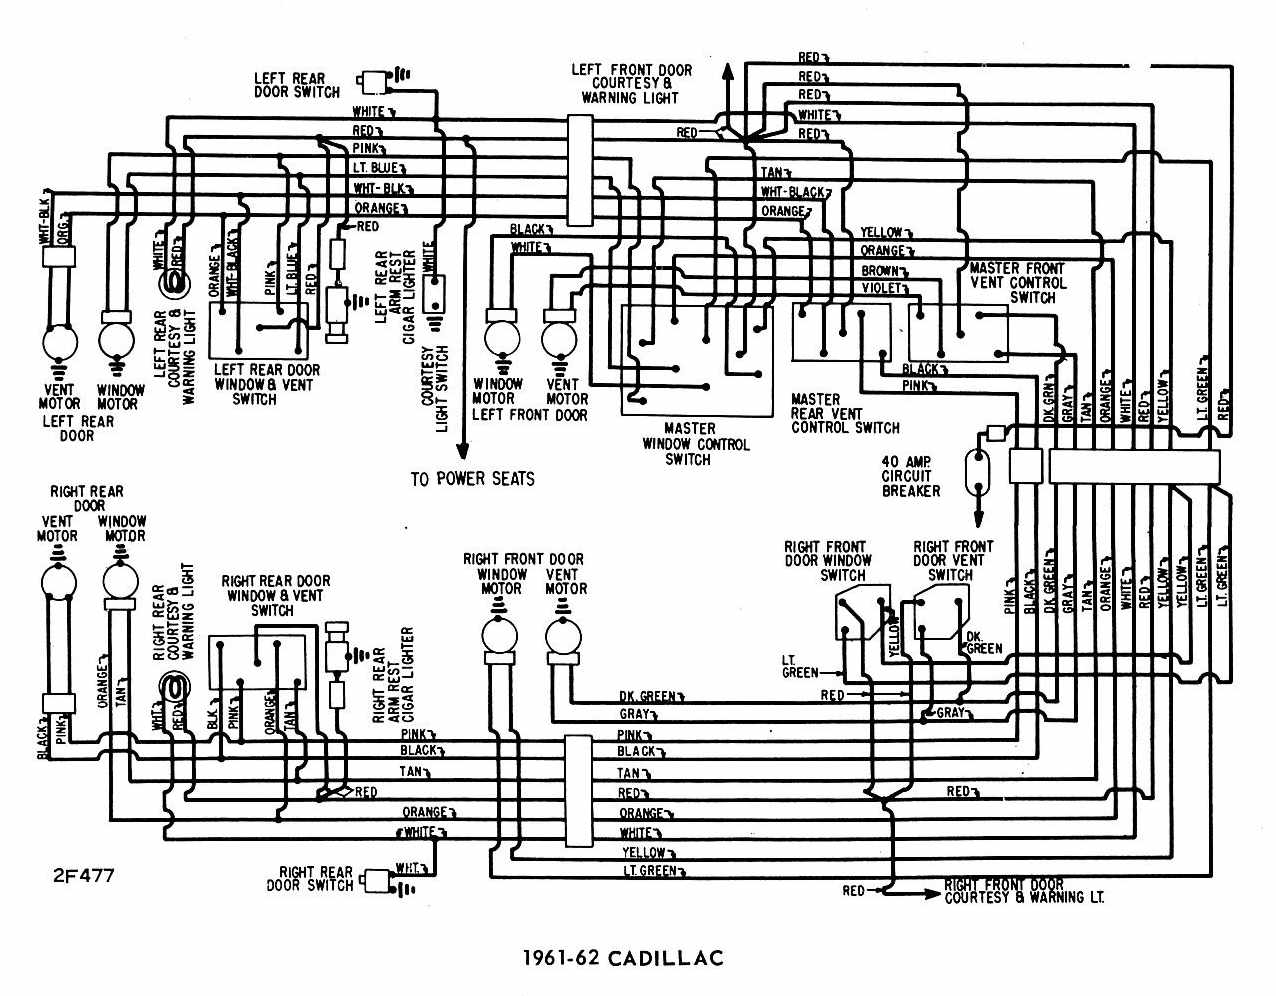 Cadillac Car Manuals Wiring Diagrams Pdf Fault Codes Packard Radio Diagram Download